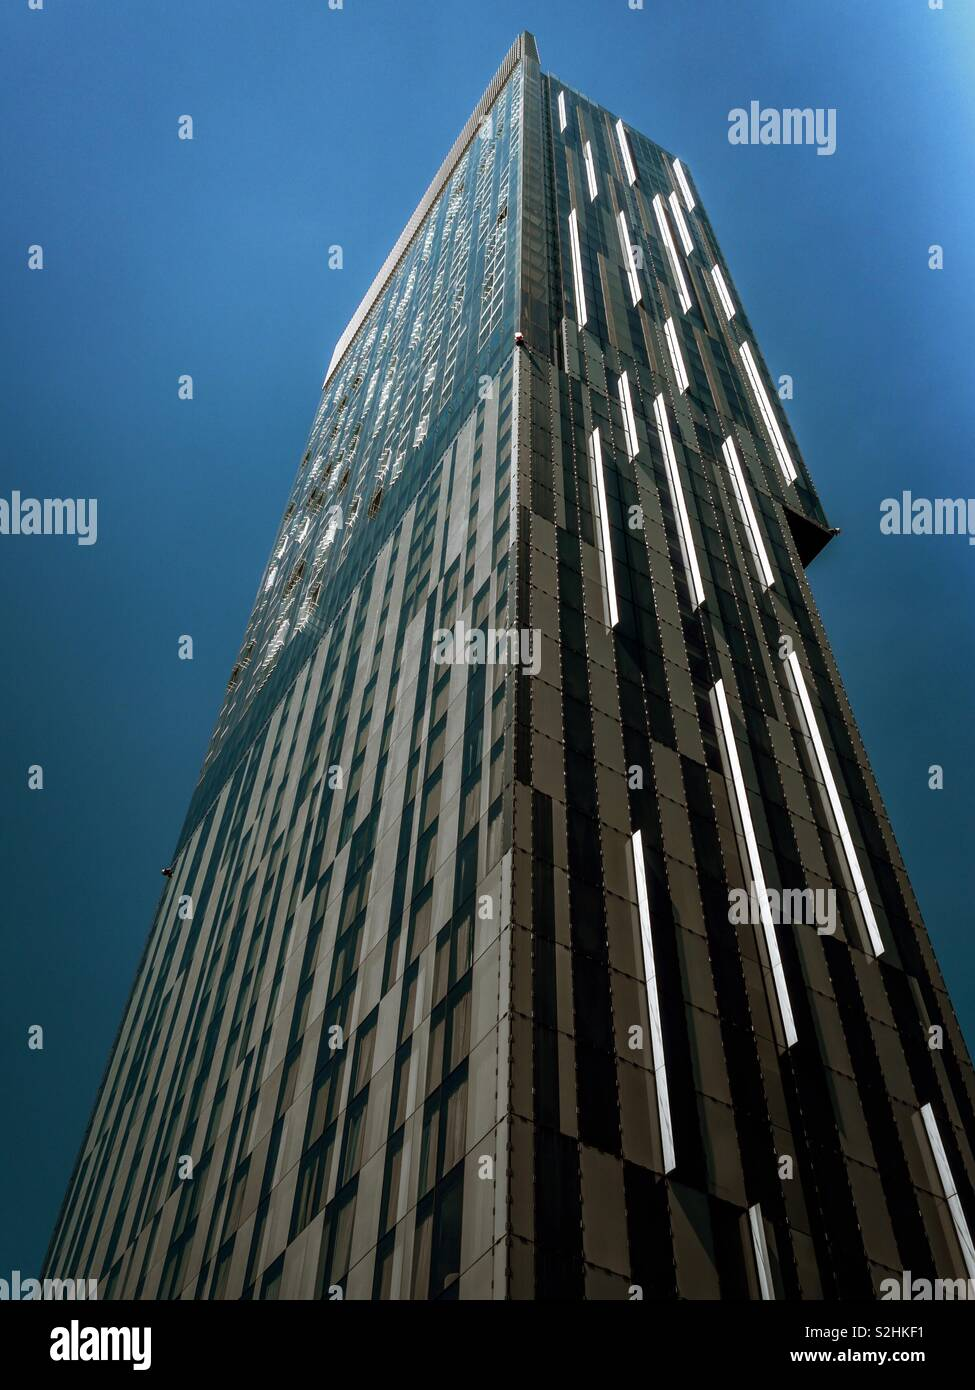 Beetham Tower Manchester UK.  Skyscraper designed by architect Ian Simpson - Stock Image